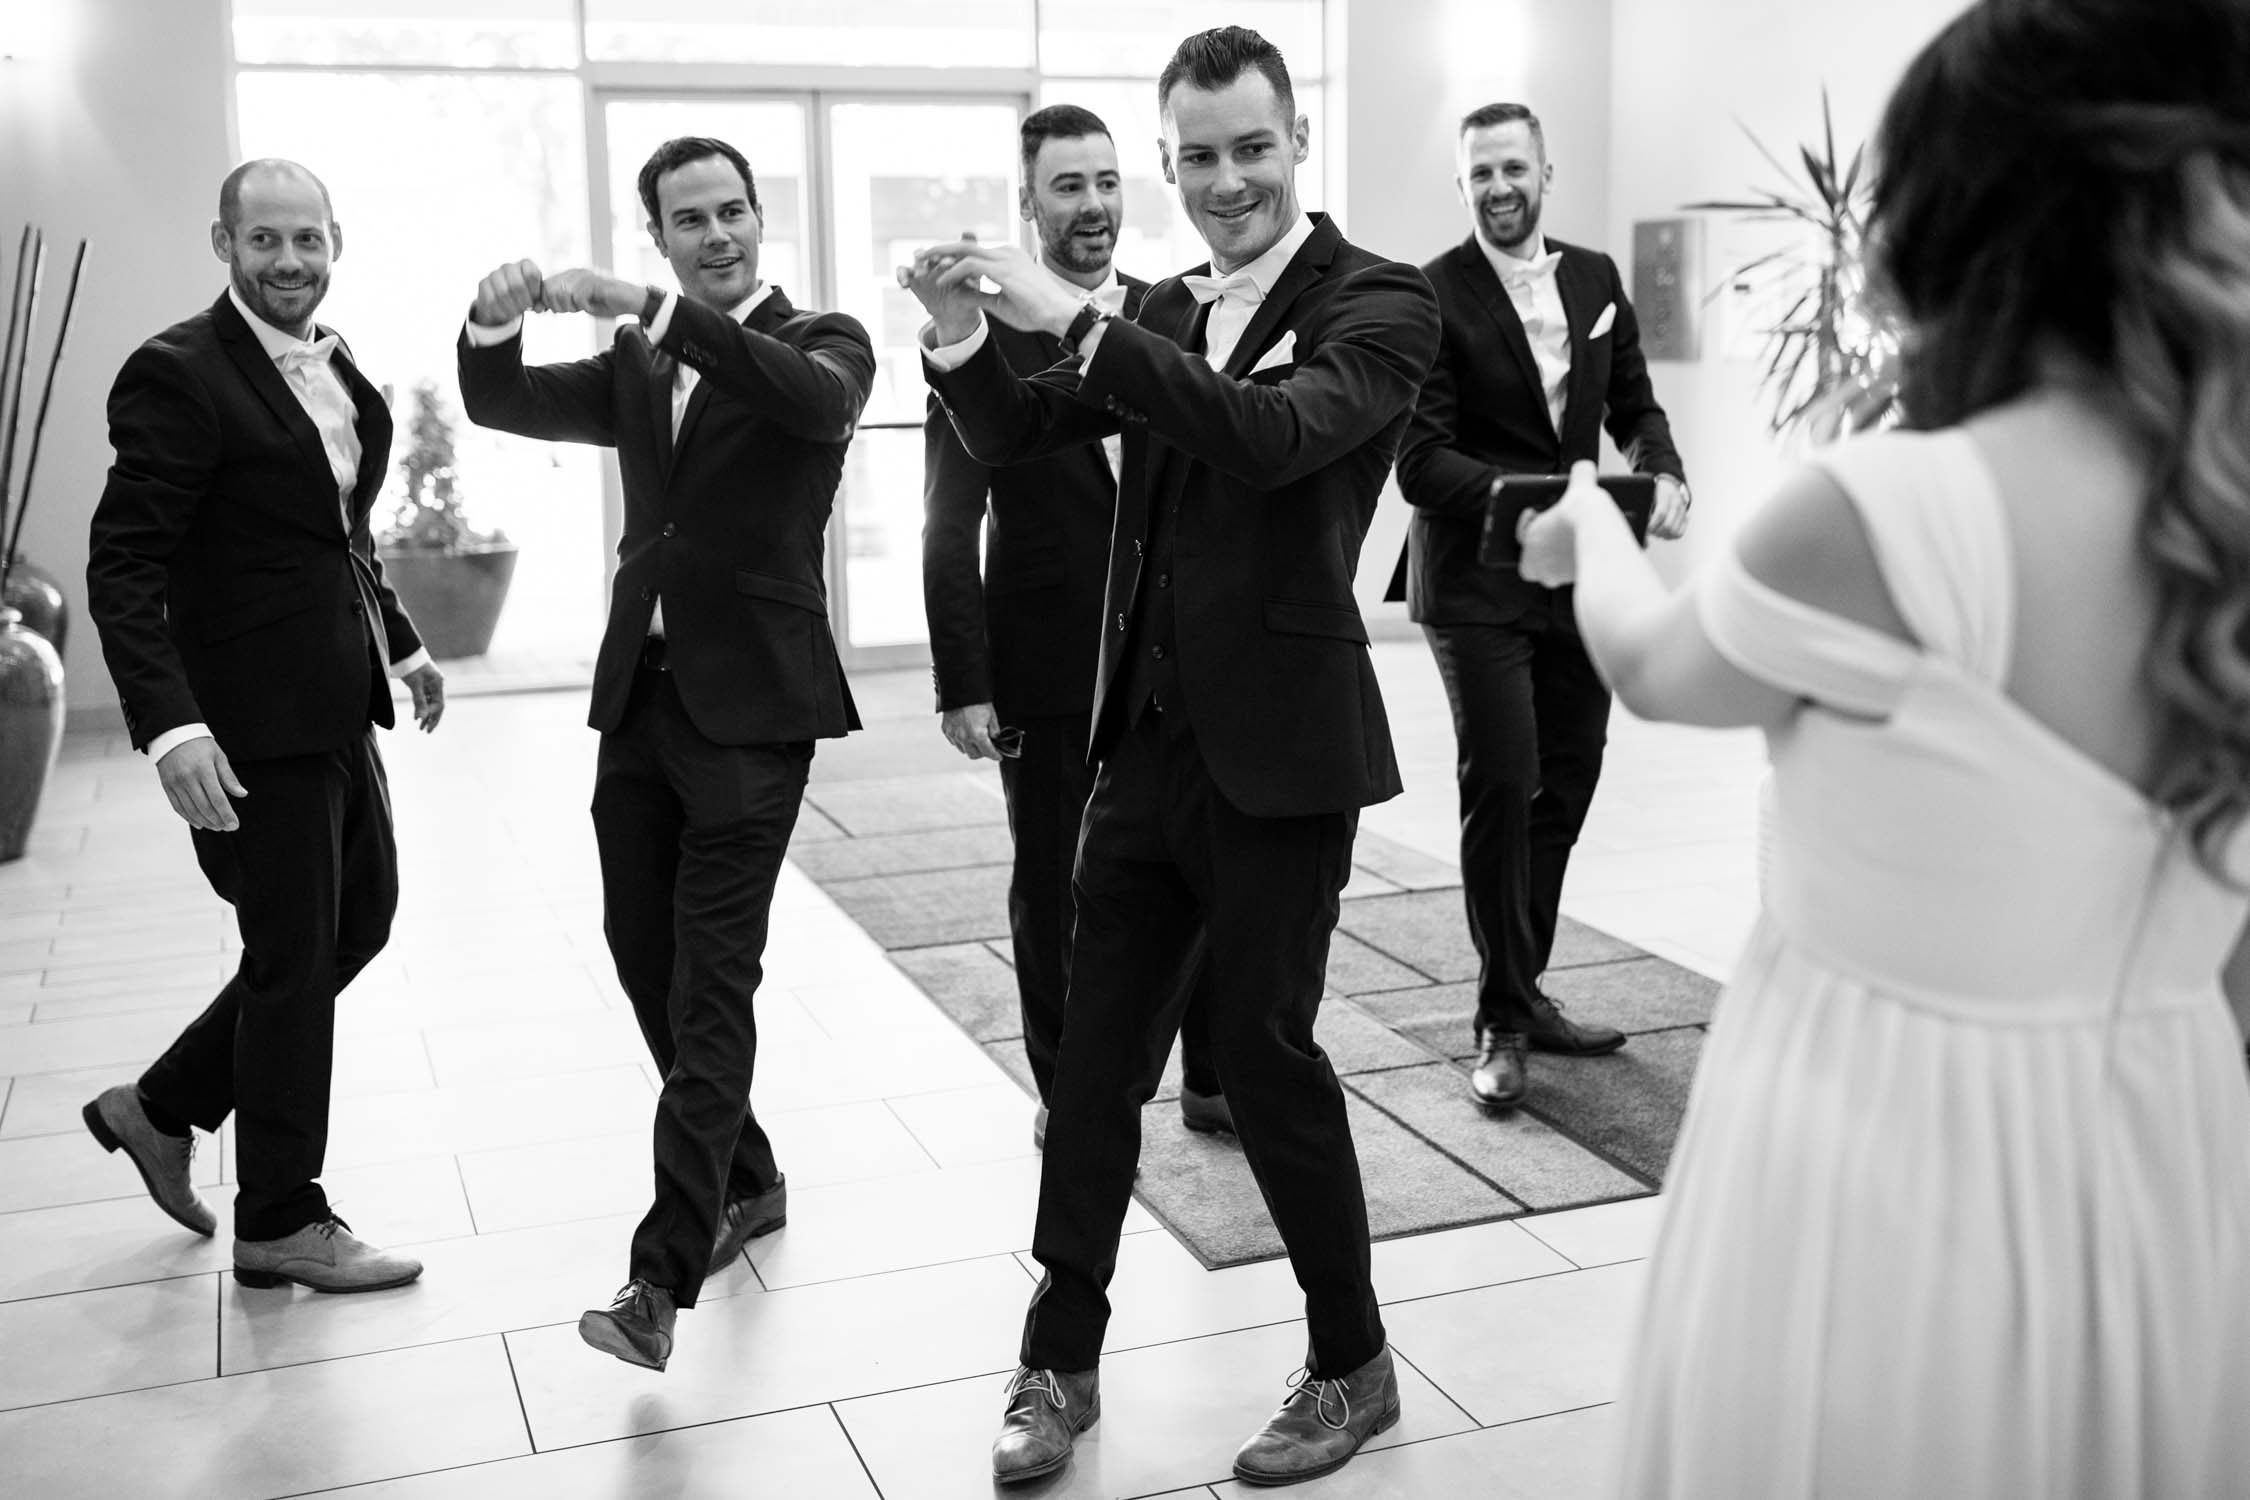 Groom plays Chinese door games played in Vancouver for bride